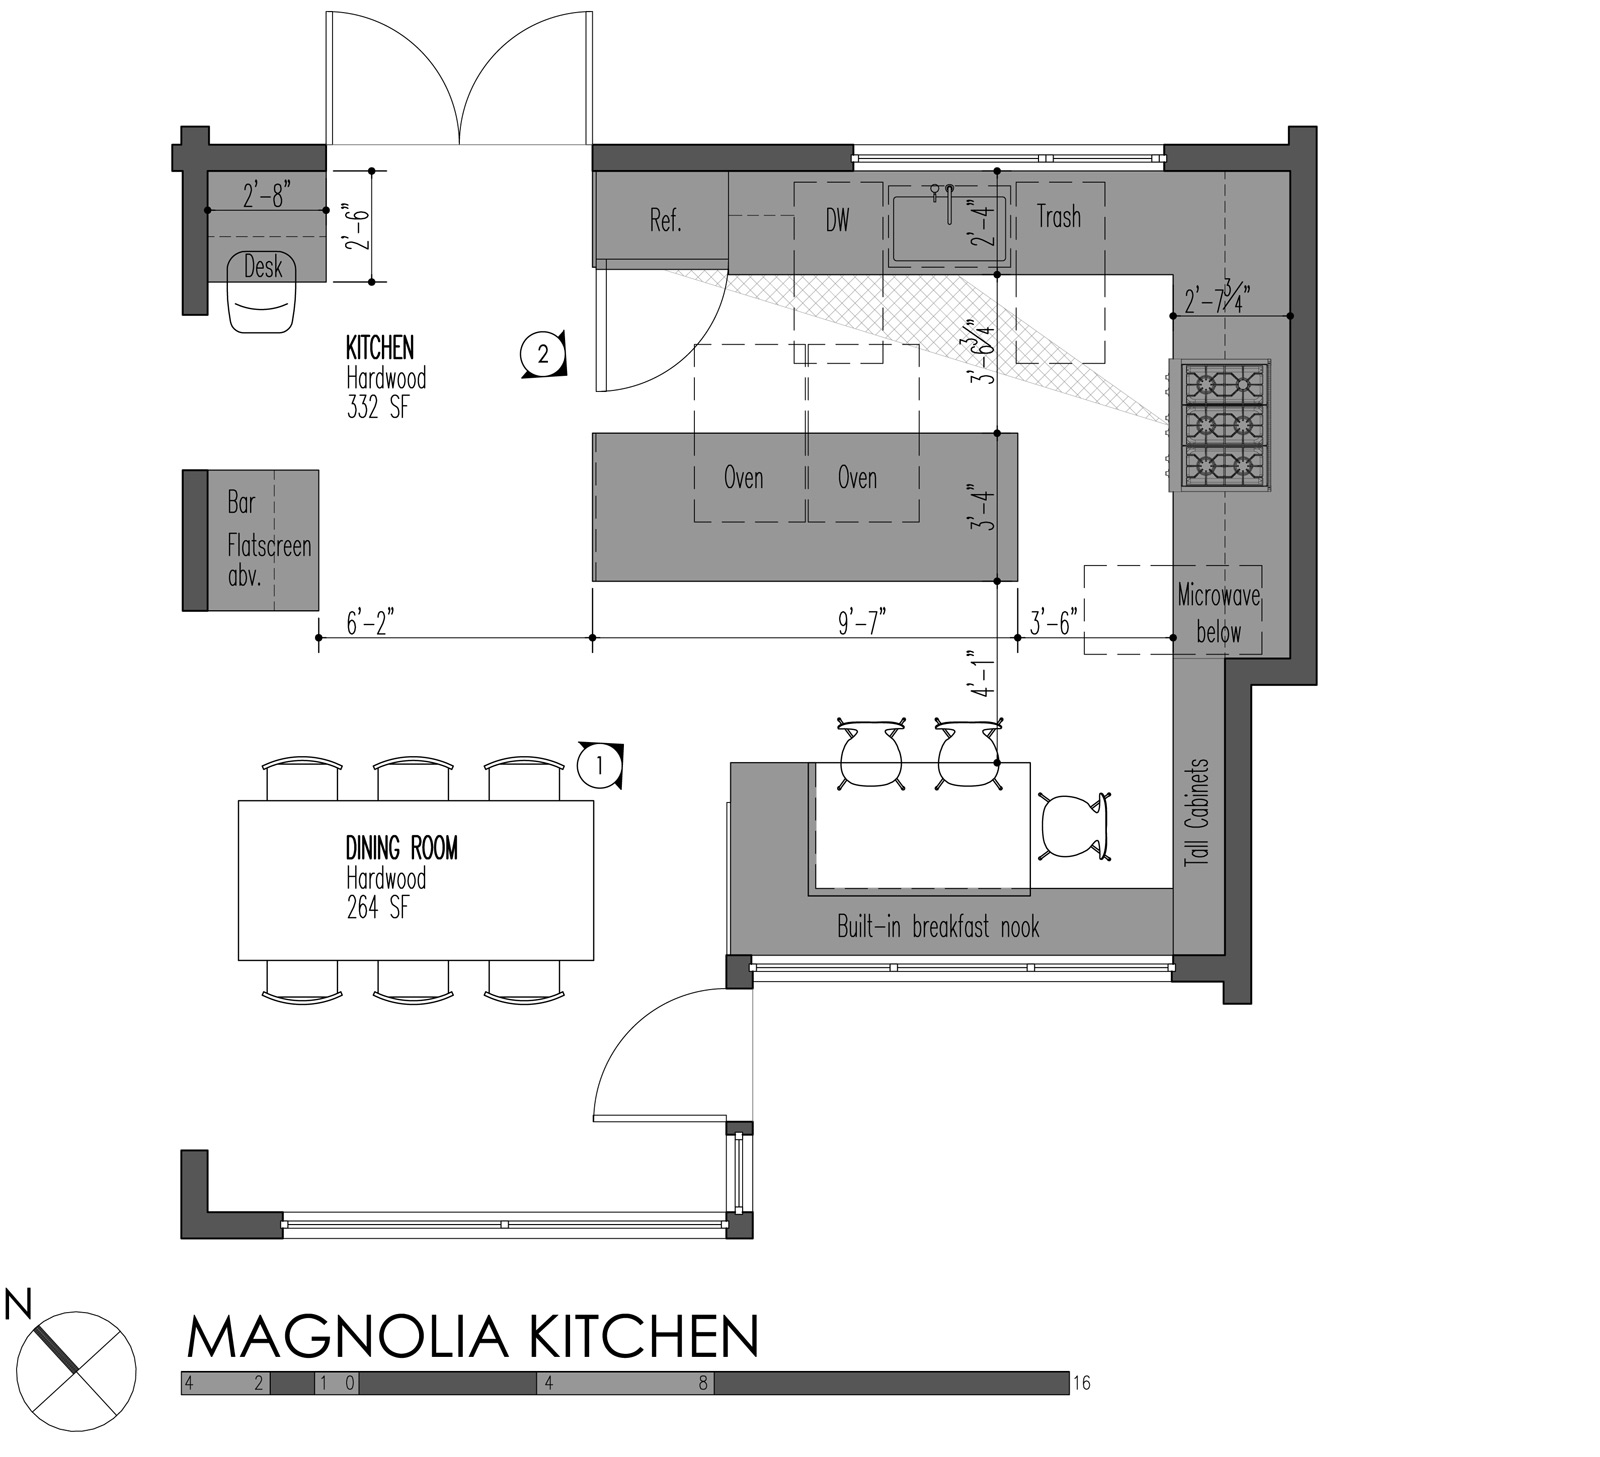 5 modern kitchen designs principles build blog for Kitchen plan layout ideas